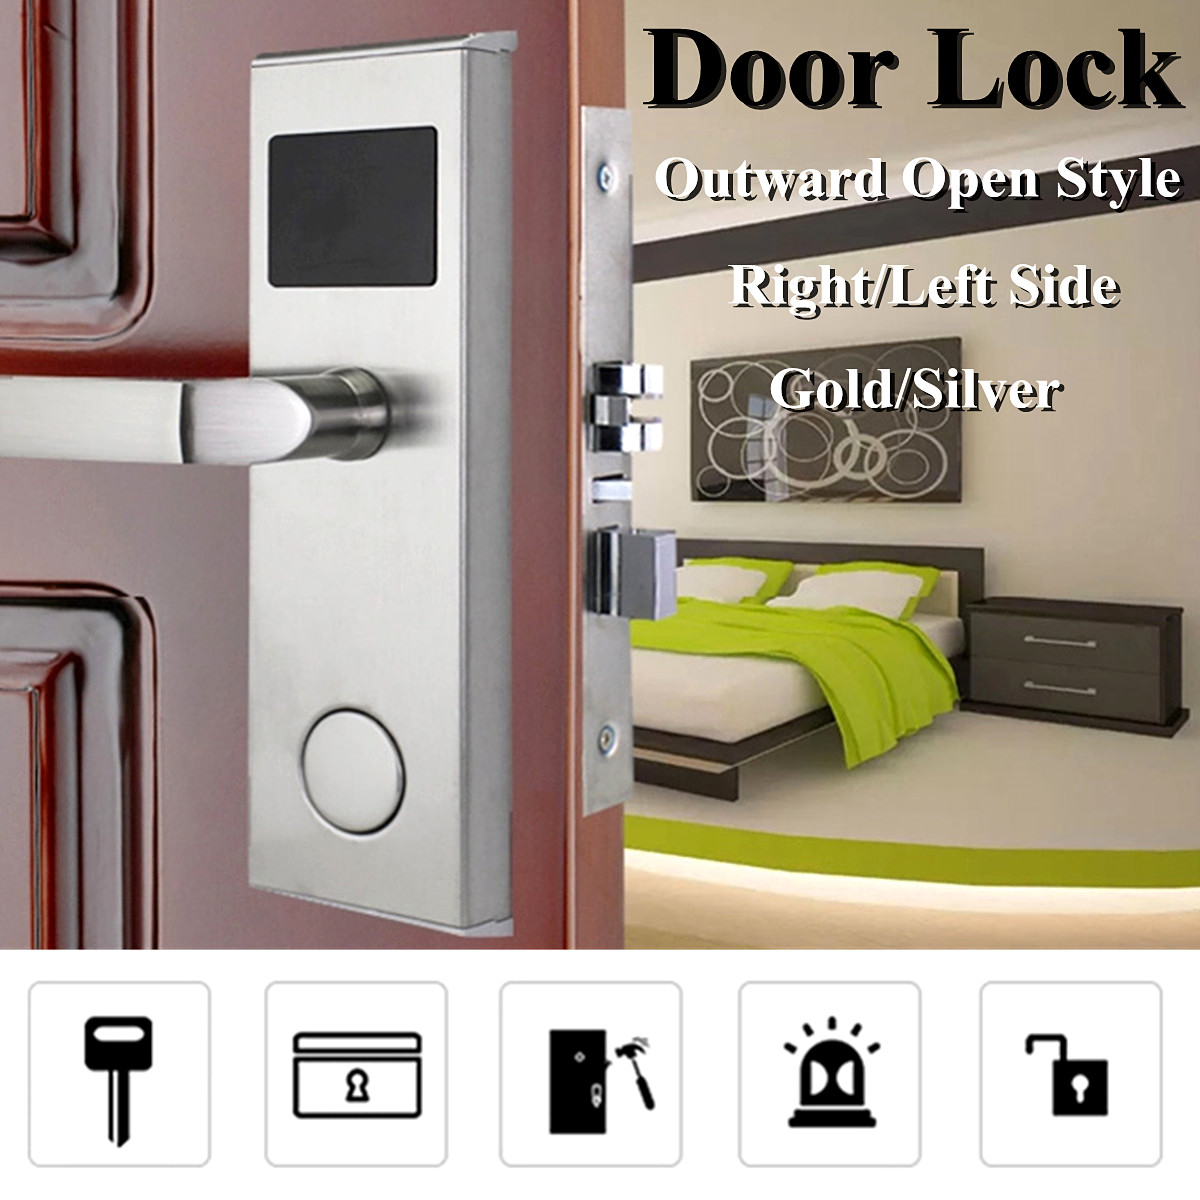 Safurance Digital Card Lock Security Intelligent RFID Digital Card Key Unlock Stainless Steel Hotel Door Lock System Door Locks